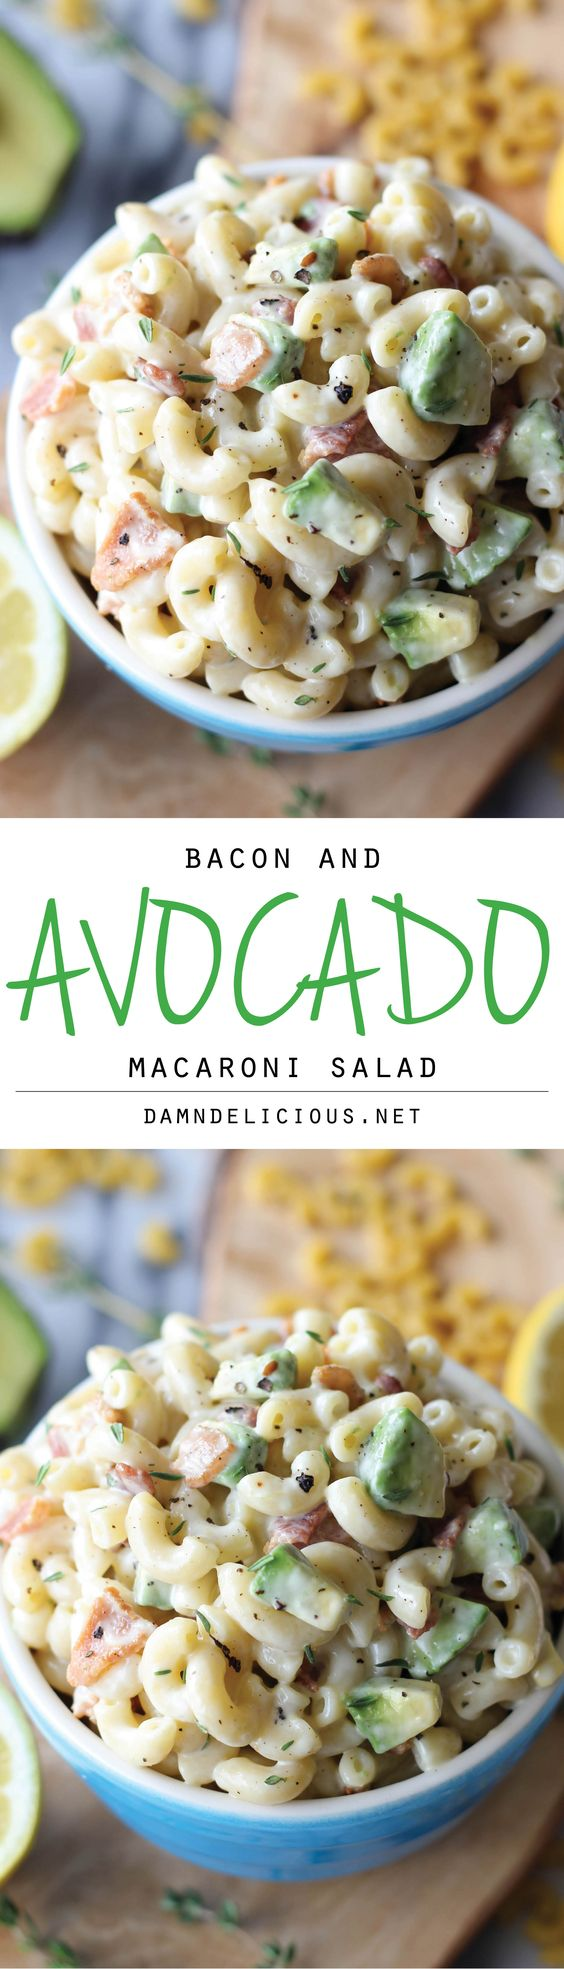 Bacon and Avocado Macaroni Pasta Salad Recipe via Damn Delicious - Loaded with fresh avocado and applewood smoked bacon tossed in a lemon-thyme dressing! Easy Pasta Salad Recipes - The BEST Yummy Barbecue Side Dishes, Potluck Favorites and Summer Dinner Party Crowd Pleasers #pastasaladrecipes #pastasalads #pastasalad #easypastasalad #potluckrecipes #potluck #partyfood #4thofJuly #picnicfood #sidedishrecipes #easysidedishes #cookoutfood #barbecuefood #blockparty